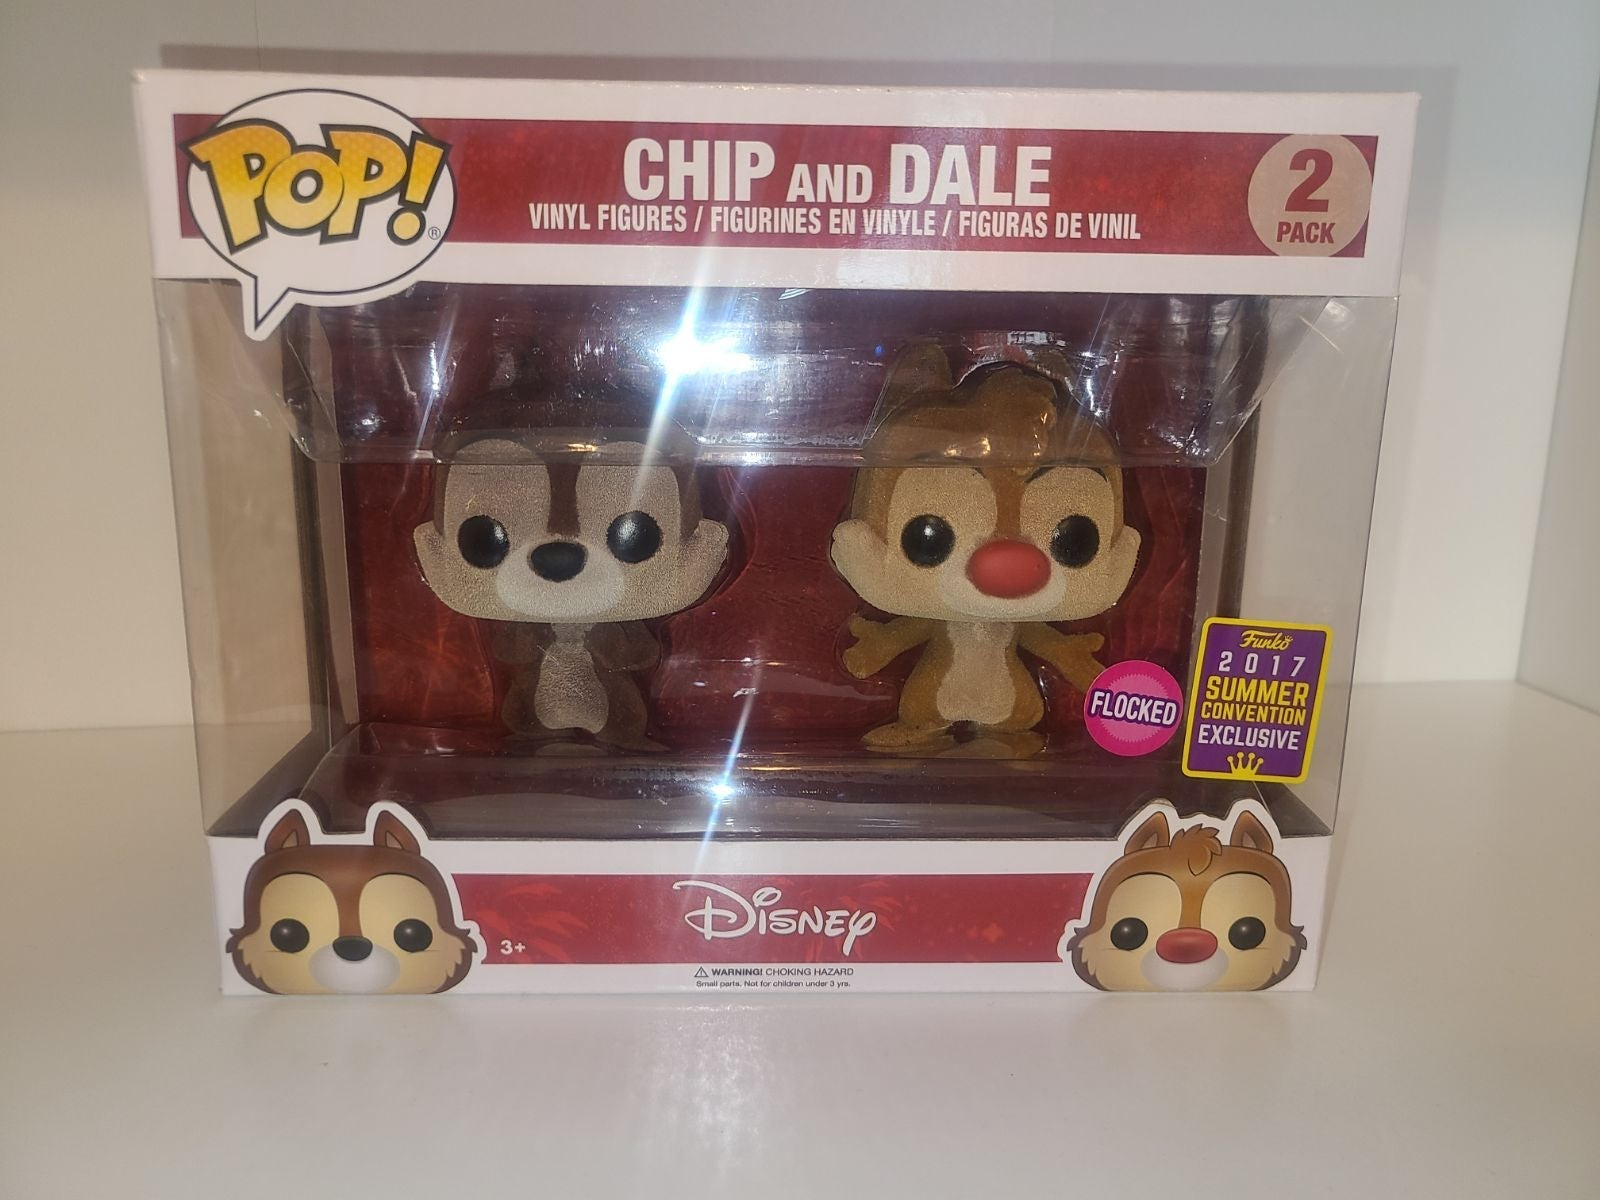 Chip and Dale Flocked 2017 Smer Conventi